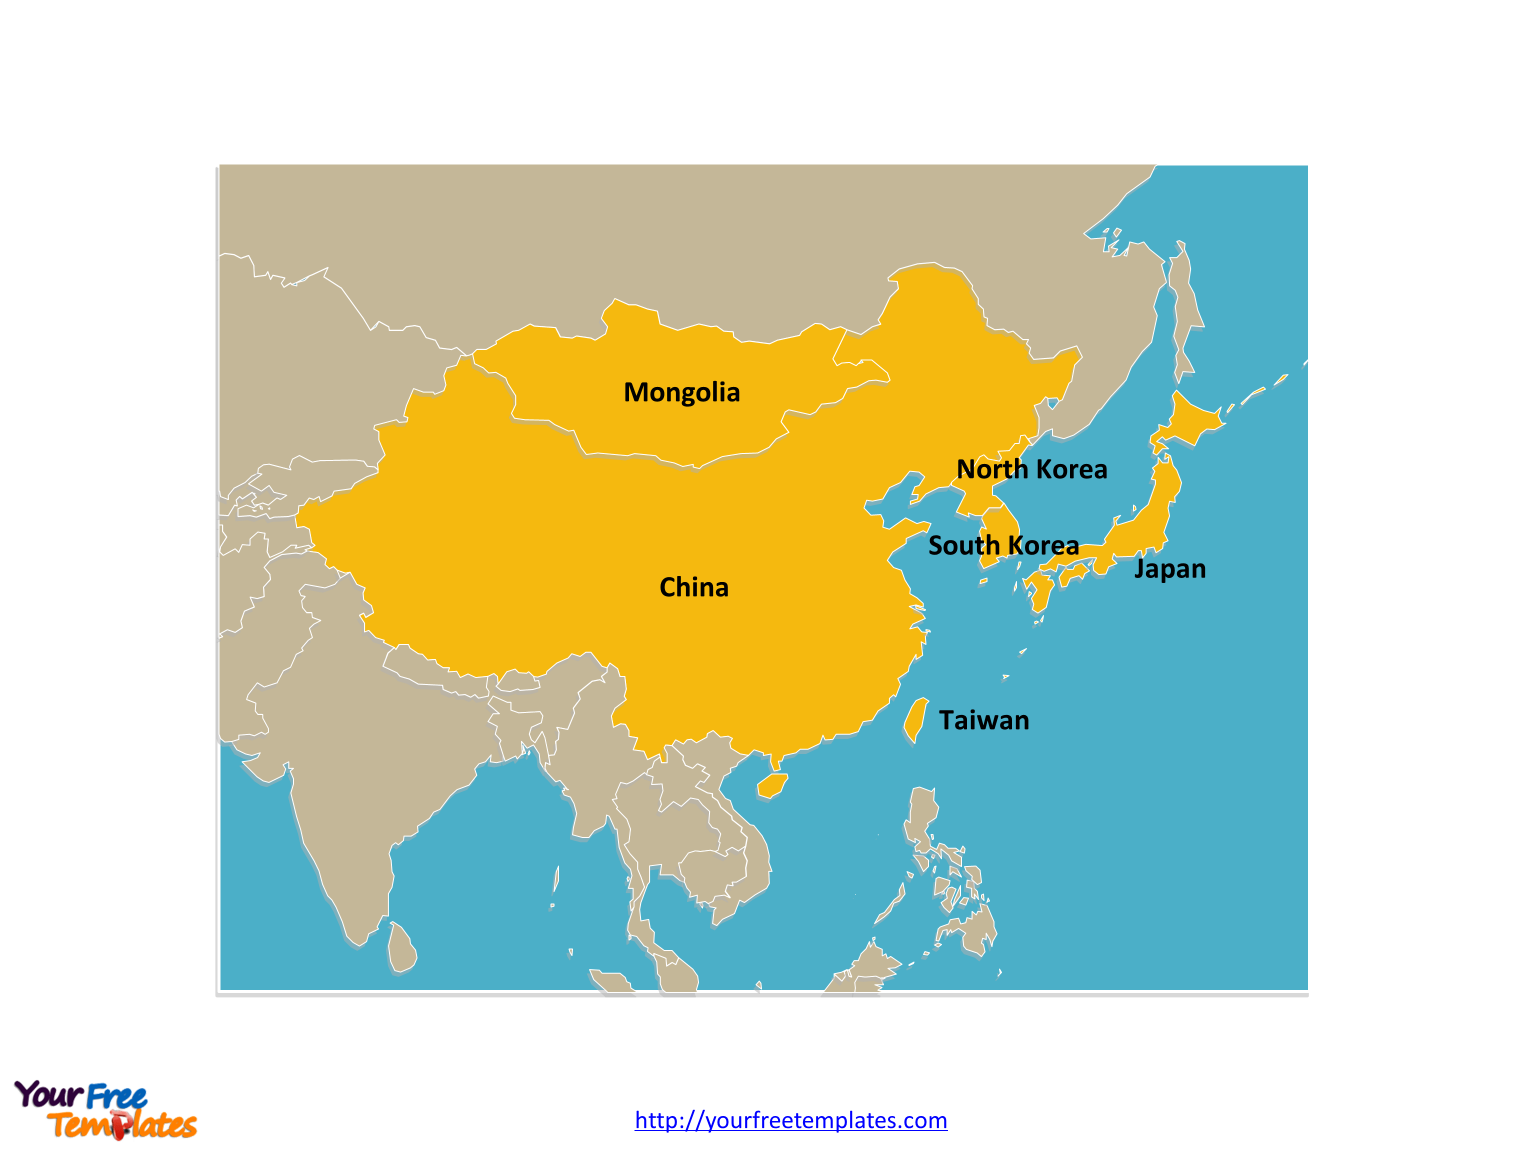 Map Of East Asia Countries.Free East Asia Map Template Free Powerpoint Templates